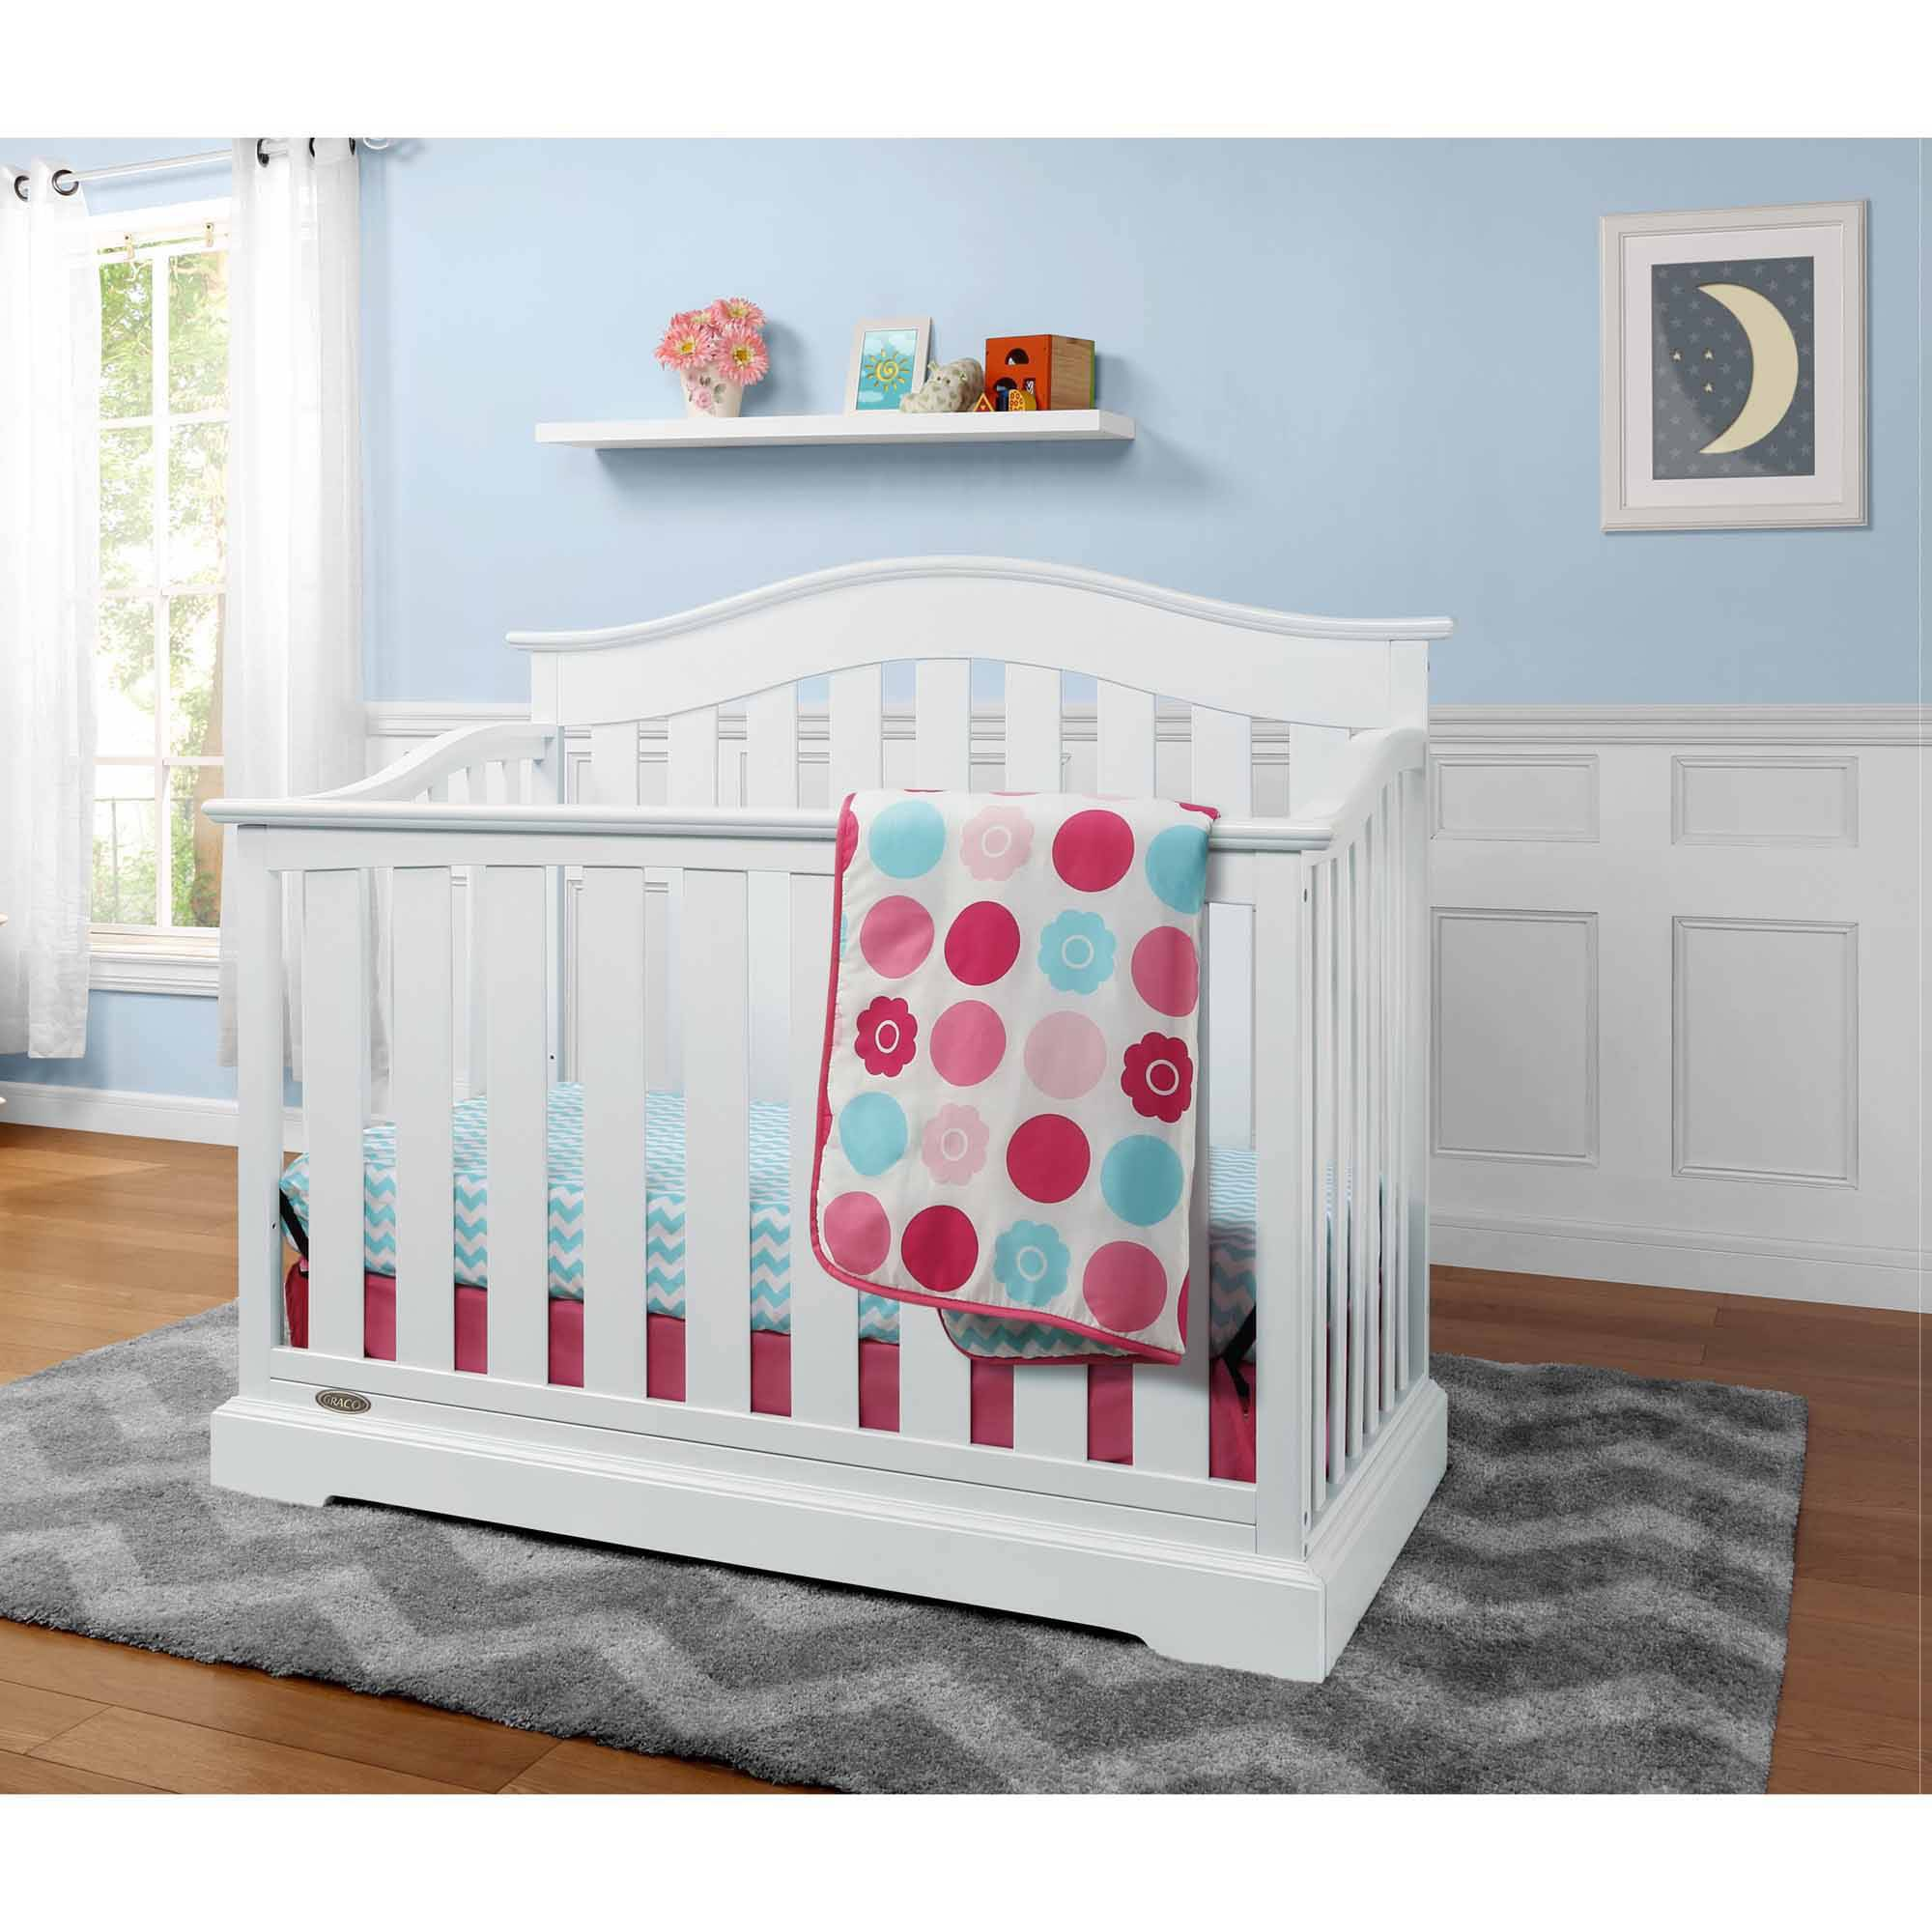 Graco Westbrook 4-in-1 Convertible Fixed-Side Crib